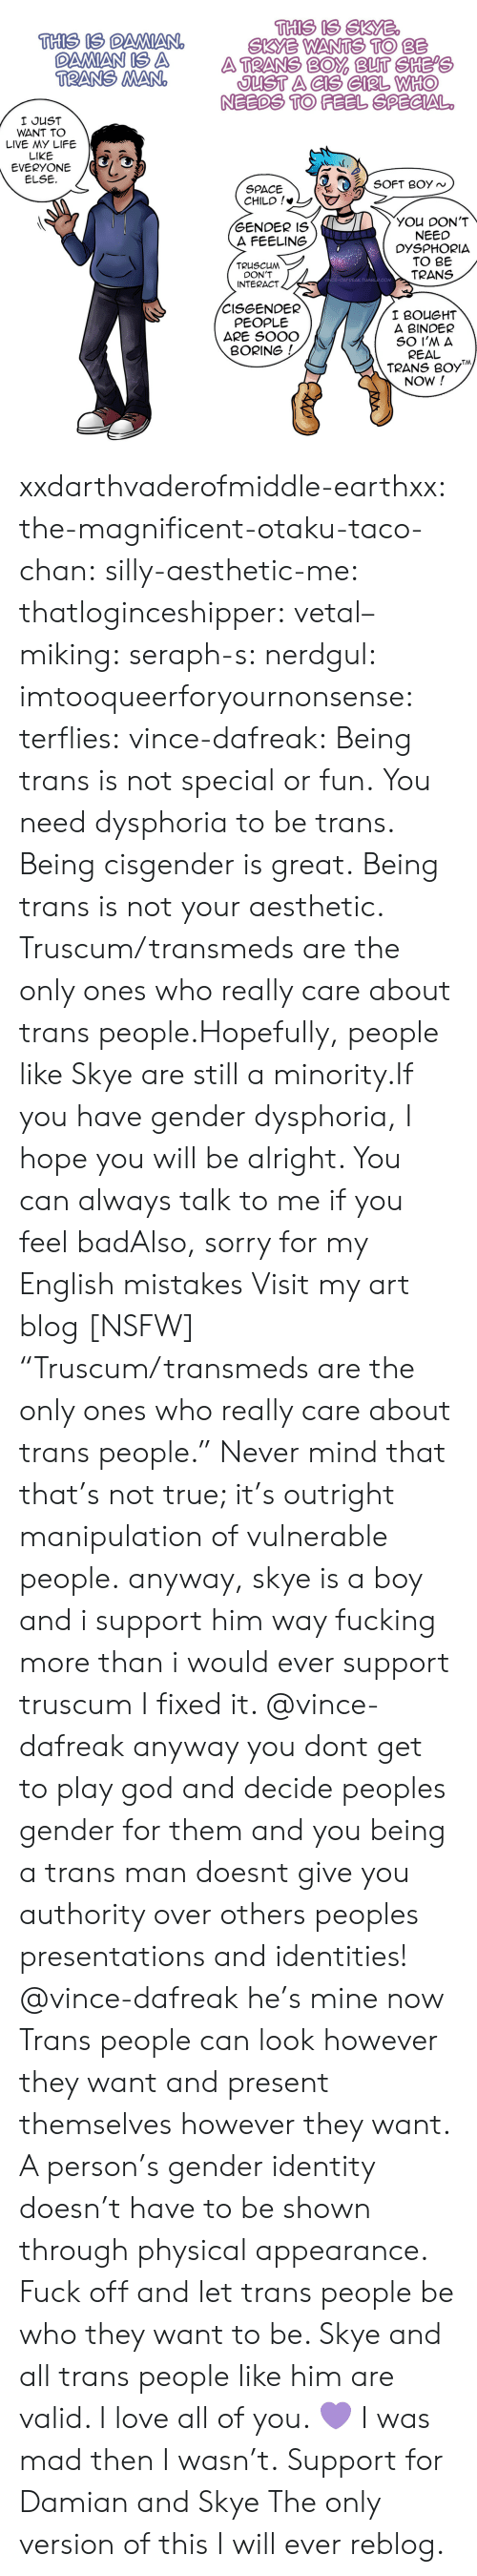 "Bad, Fucking, and God: THIS IS SKYB  SKYE WANTS TO BE  THIS IS DAMIANO  OAMAN IS A ATRANS BO BUT CHEPe  TRANS MAN  JUST A CIS GIRL WHHO  NEEDS TO FEEL SPECIAL  I JUST  WANT TO  LIVE MY LIFE  LIKE  EVERYONE /G  ELSE  SPACE  CHILD !*  YOU DON'T  NEED  DYSPHORIA  TO BE  TRANS  GENDER IS  A FEELING  TRUSCUM  DON'T  INTERACT  -DAFREAK.TUMBLR.COM  CISGENDER  PEOPLE  ARE SOOO  I BOUGHT  A BINDER  BORING  REAL  TRANS B0y  NOW! xxdarthvaderofmiddle-earthxx:  the-magnificent-otaku-taco-chan:  silly-aesthetic-me:  thatloginceshipper:   vetal–miking:  seraph-s:  nerdgul:  imtooqueerforyournonsense:  terflies:   vince-dafreak:  Being trans is not special or fun. You need dysphoria to be trans. Being cisgender is great. Being trans is not your aesthetic. Truscum/transmeds are the only ones who really care about trans people.Hopefully, people like Skye are still a minority.If you have gender dysphoria, I hope you will be alright. You can always talk to me if you feel badAlso, sorry for my English mistakes  Visit my art blog [NSFW]    ""Truscum/transmeds are the only ones who really care about trans people."" Never mind that that's not true; it's outright manipulation of vulnerable people.   anyway, skye is a boy and i support him way fucking more than i would ever support truscum  I fixed it.   @vince-dafreak anyway you dont get to play god and decide peoples gender for them and you being a trans man doesnt give you authority over others peoples presentations and identities!   @vince-dafreak he's mine now   Trans people can look however they want and present themselves however they want. A person's gender identity doesn't have to be shown through physical appearance. Fuck off and let trans people be who they want to be. Skye and all trans people like him are valid. I love all of you. 💜   I was mad then I wasn't.  Support for Damian and Skye  The only version of this I will ever reblog."